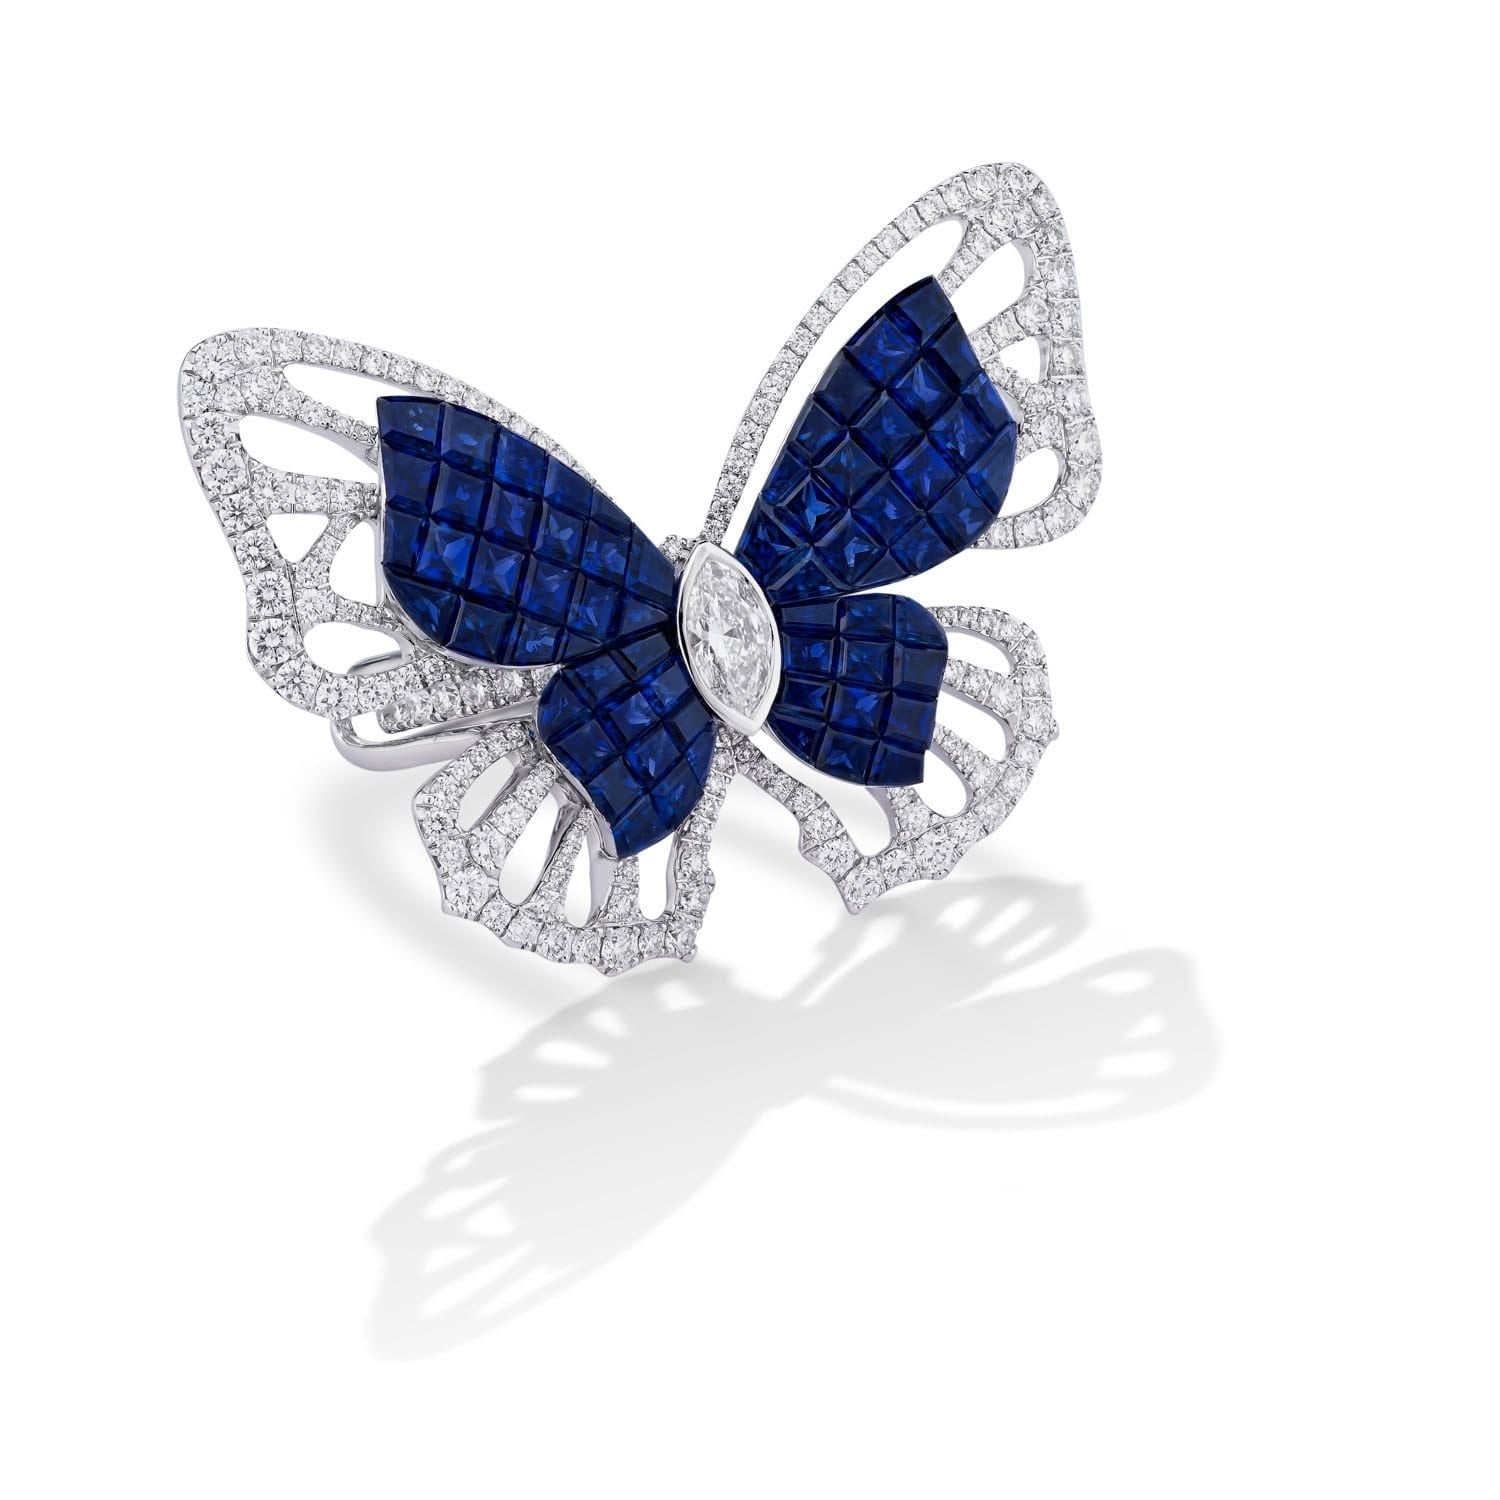 MADEMOISELLE B., KIMONO Ring in sapphires - STENZHORN JEWELLERY